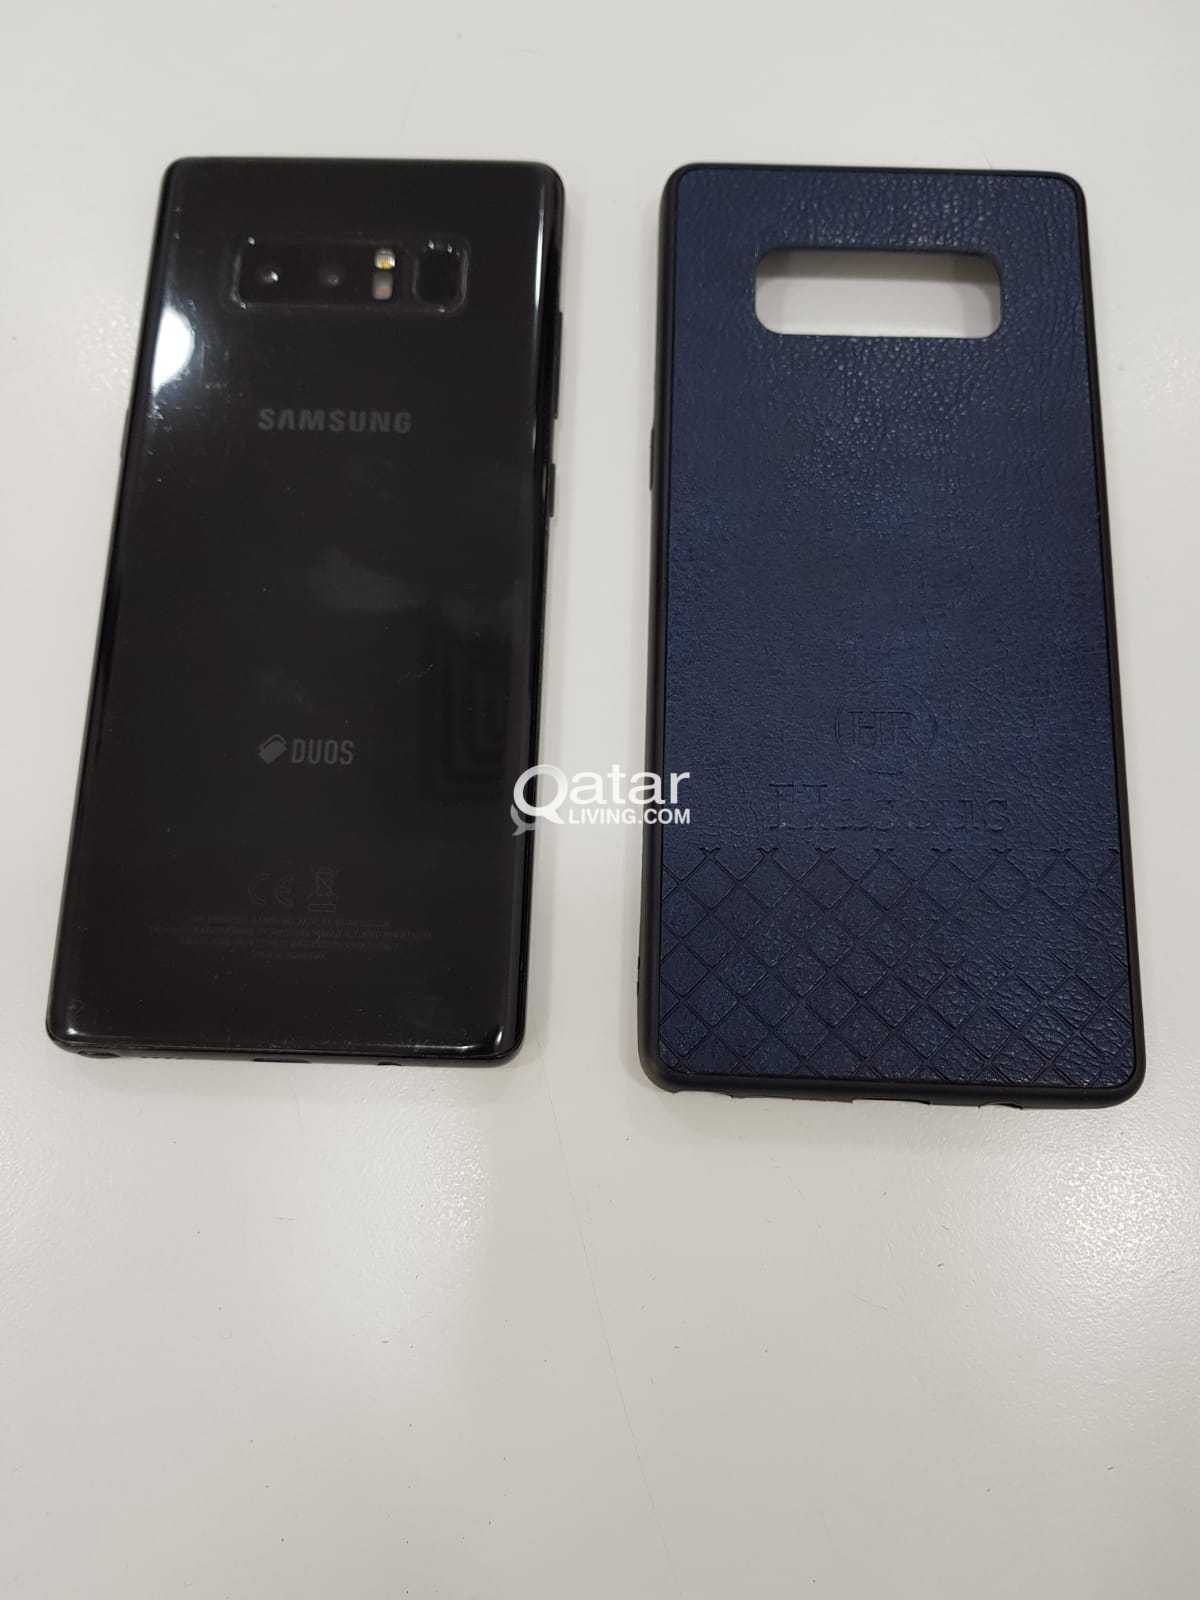 Samsung Note 8 for Sale or Swap with Note 9 / S10+